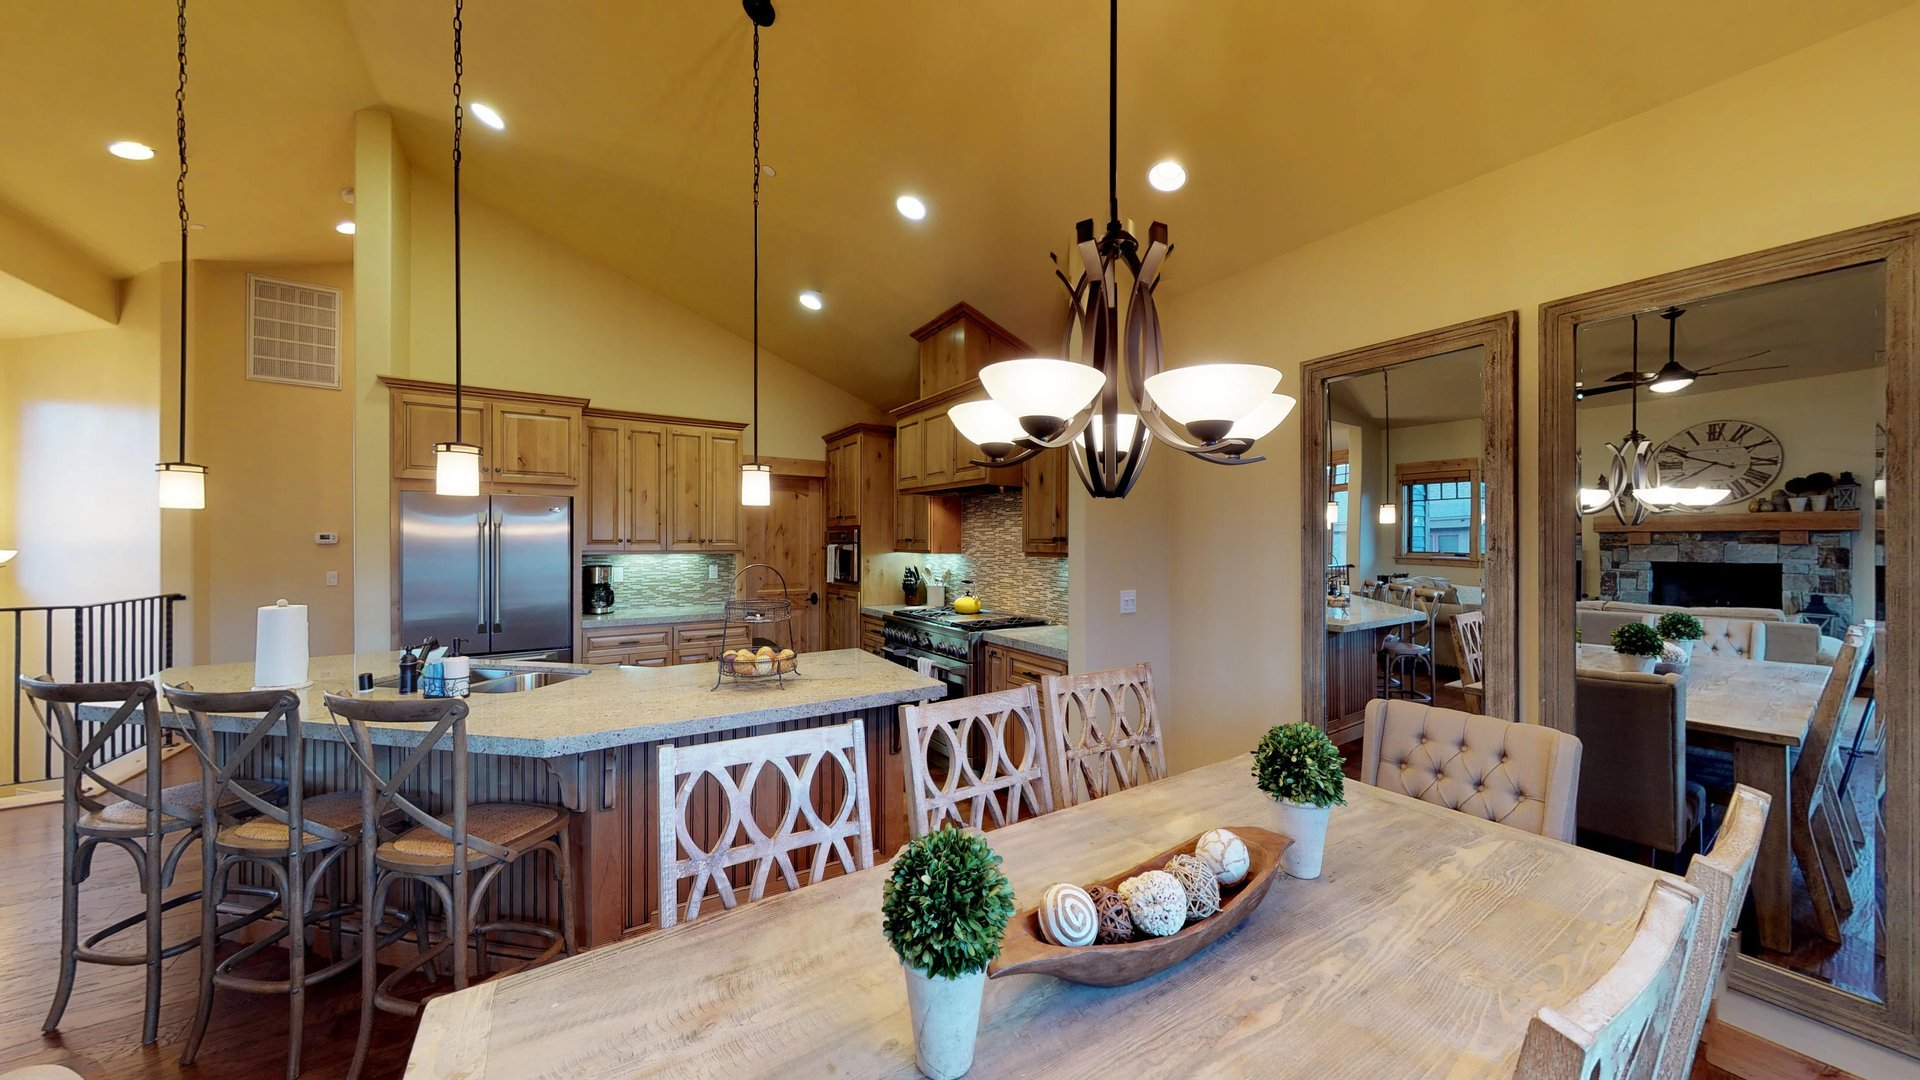 An Image of Kitchen of Large Dining Table.